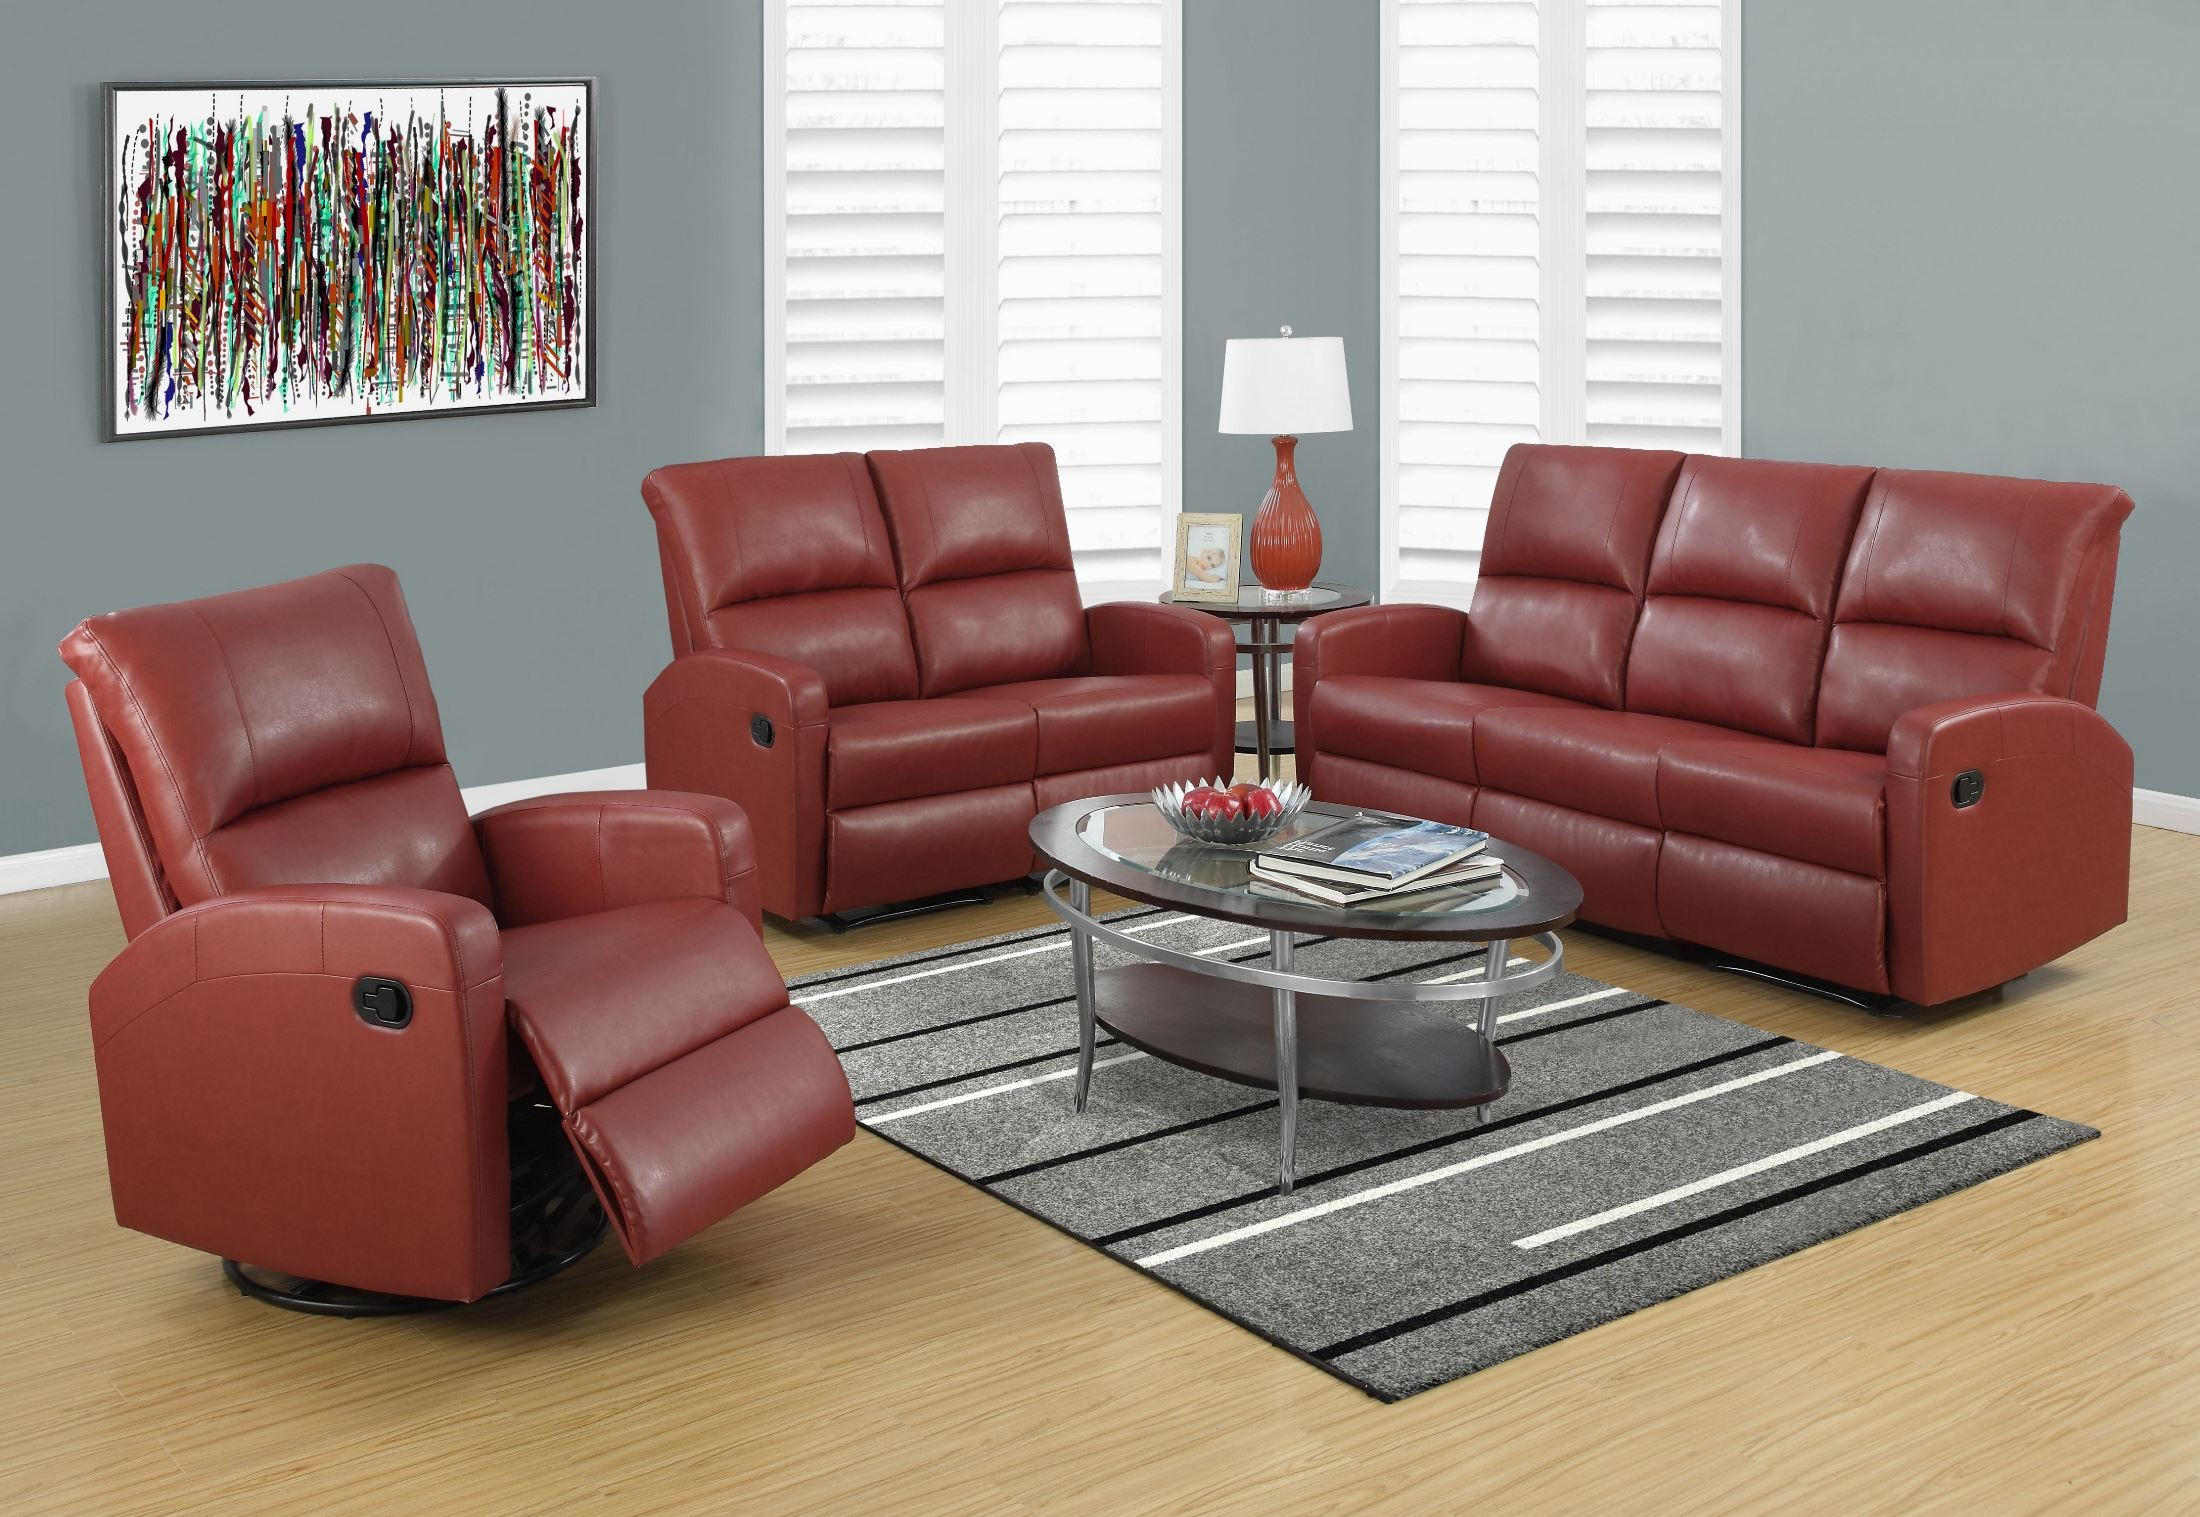 Red Bonded Leather Reclining Sofa From Monarch   Coleman Throughout Bonded Leather All In One Sectional Sofas With Ottoman And 2 Pillows Brown (View 9 of 15)